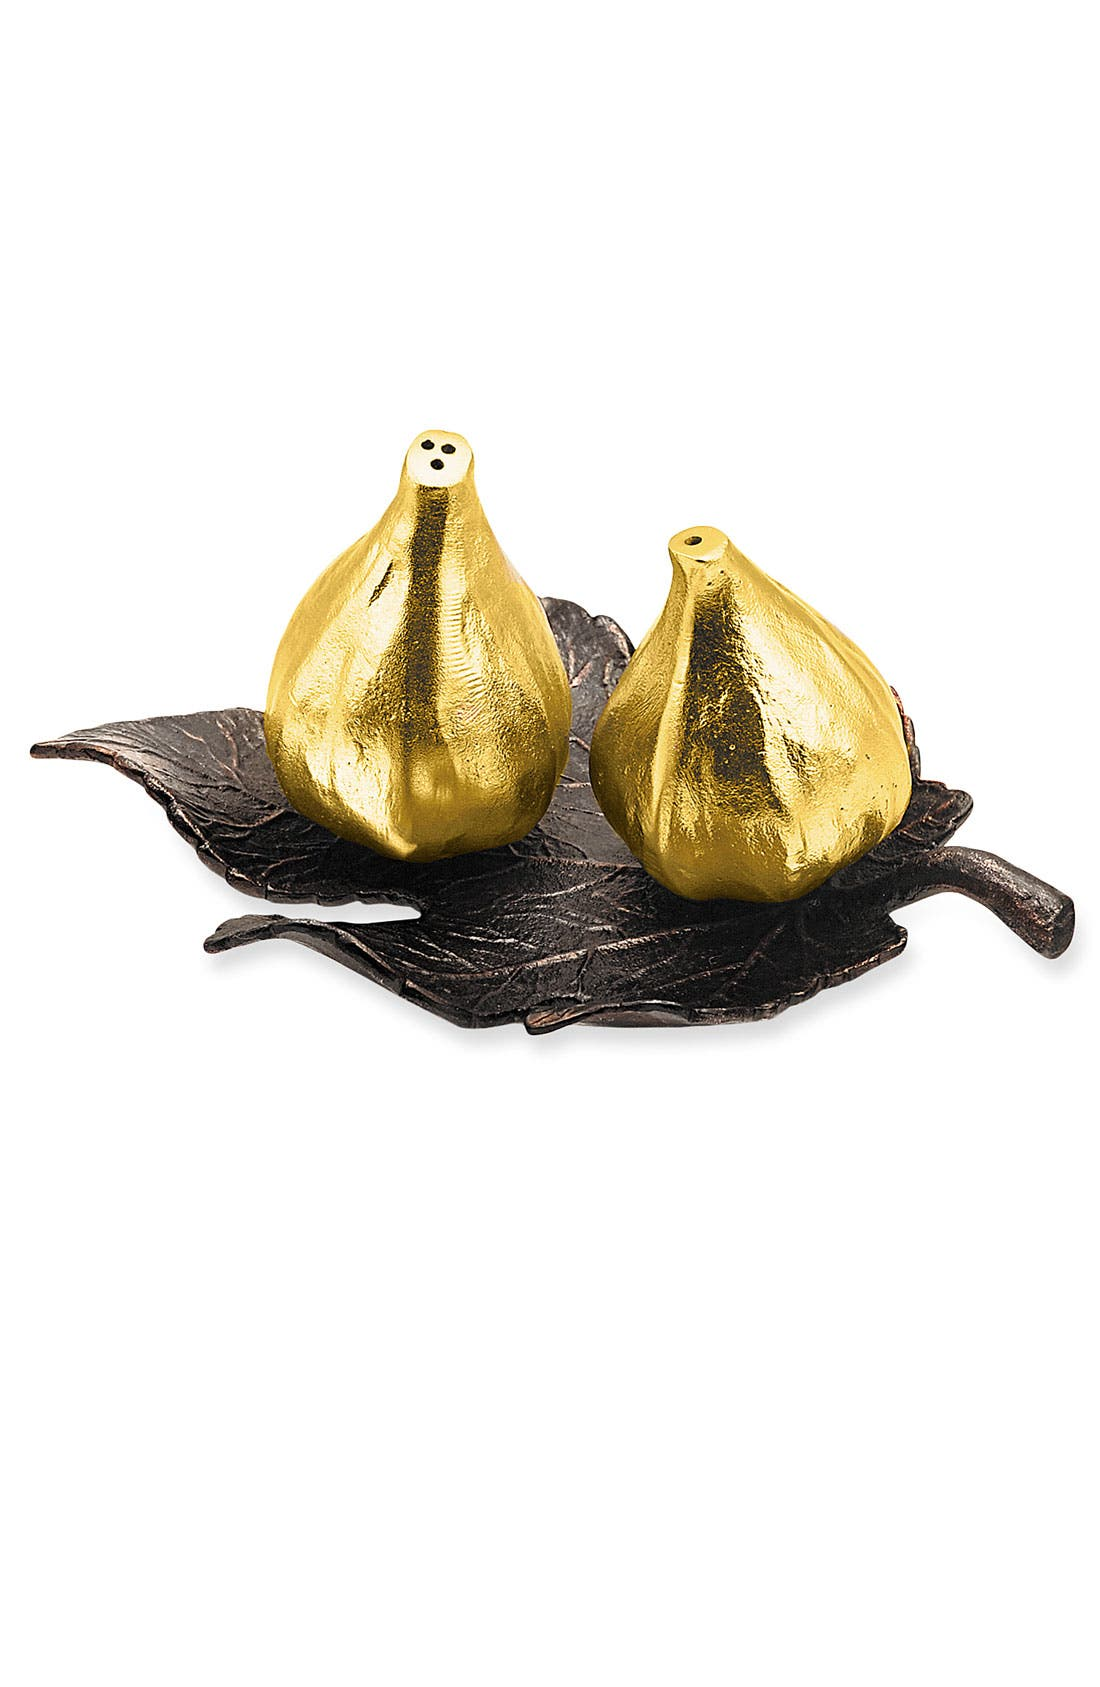 Main Image - Michael Aram 'Fig Leaf' Salt & Pepper Shakers